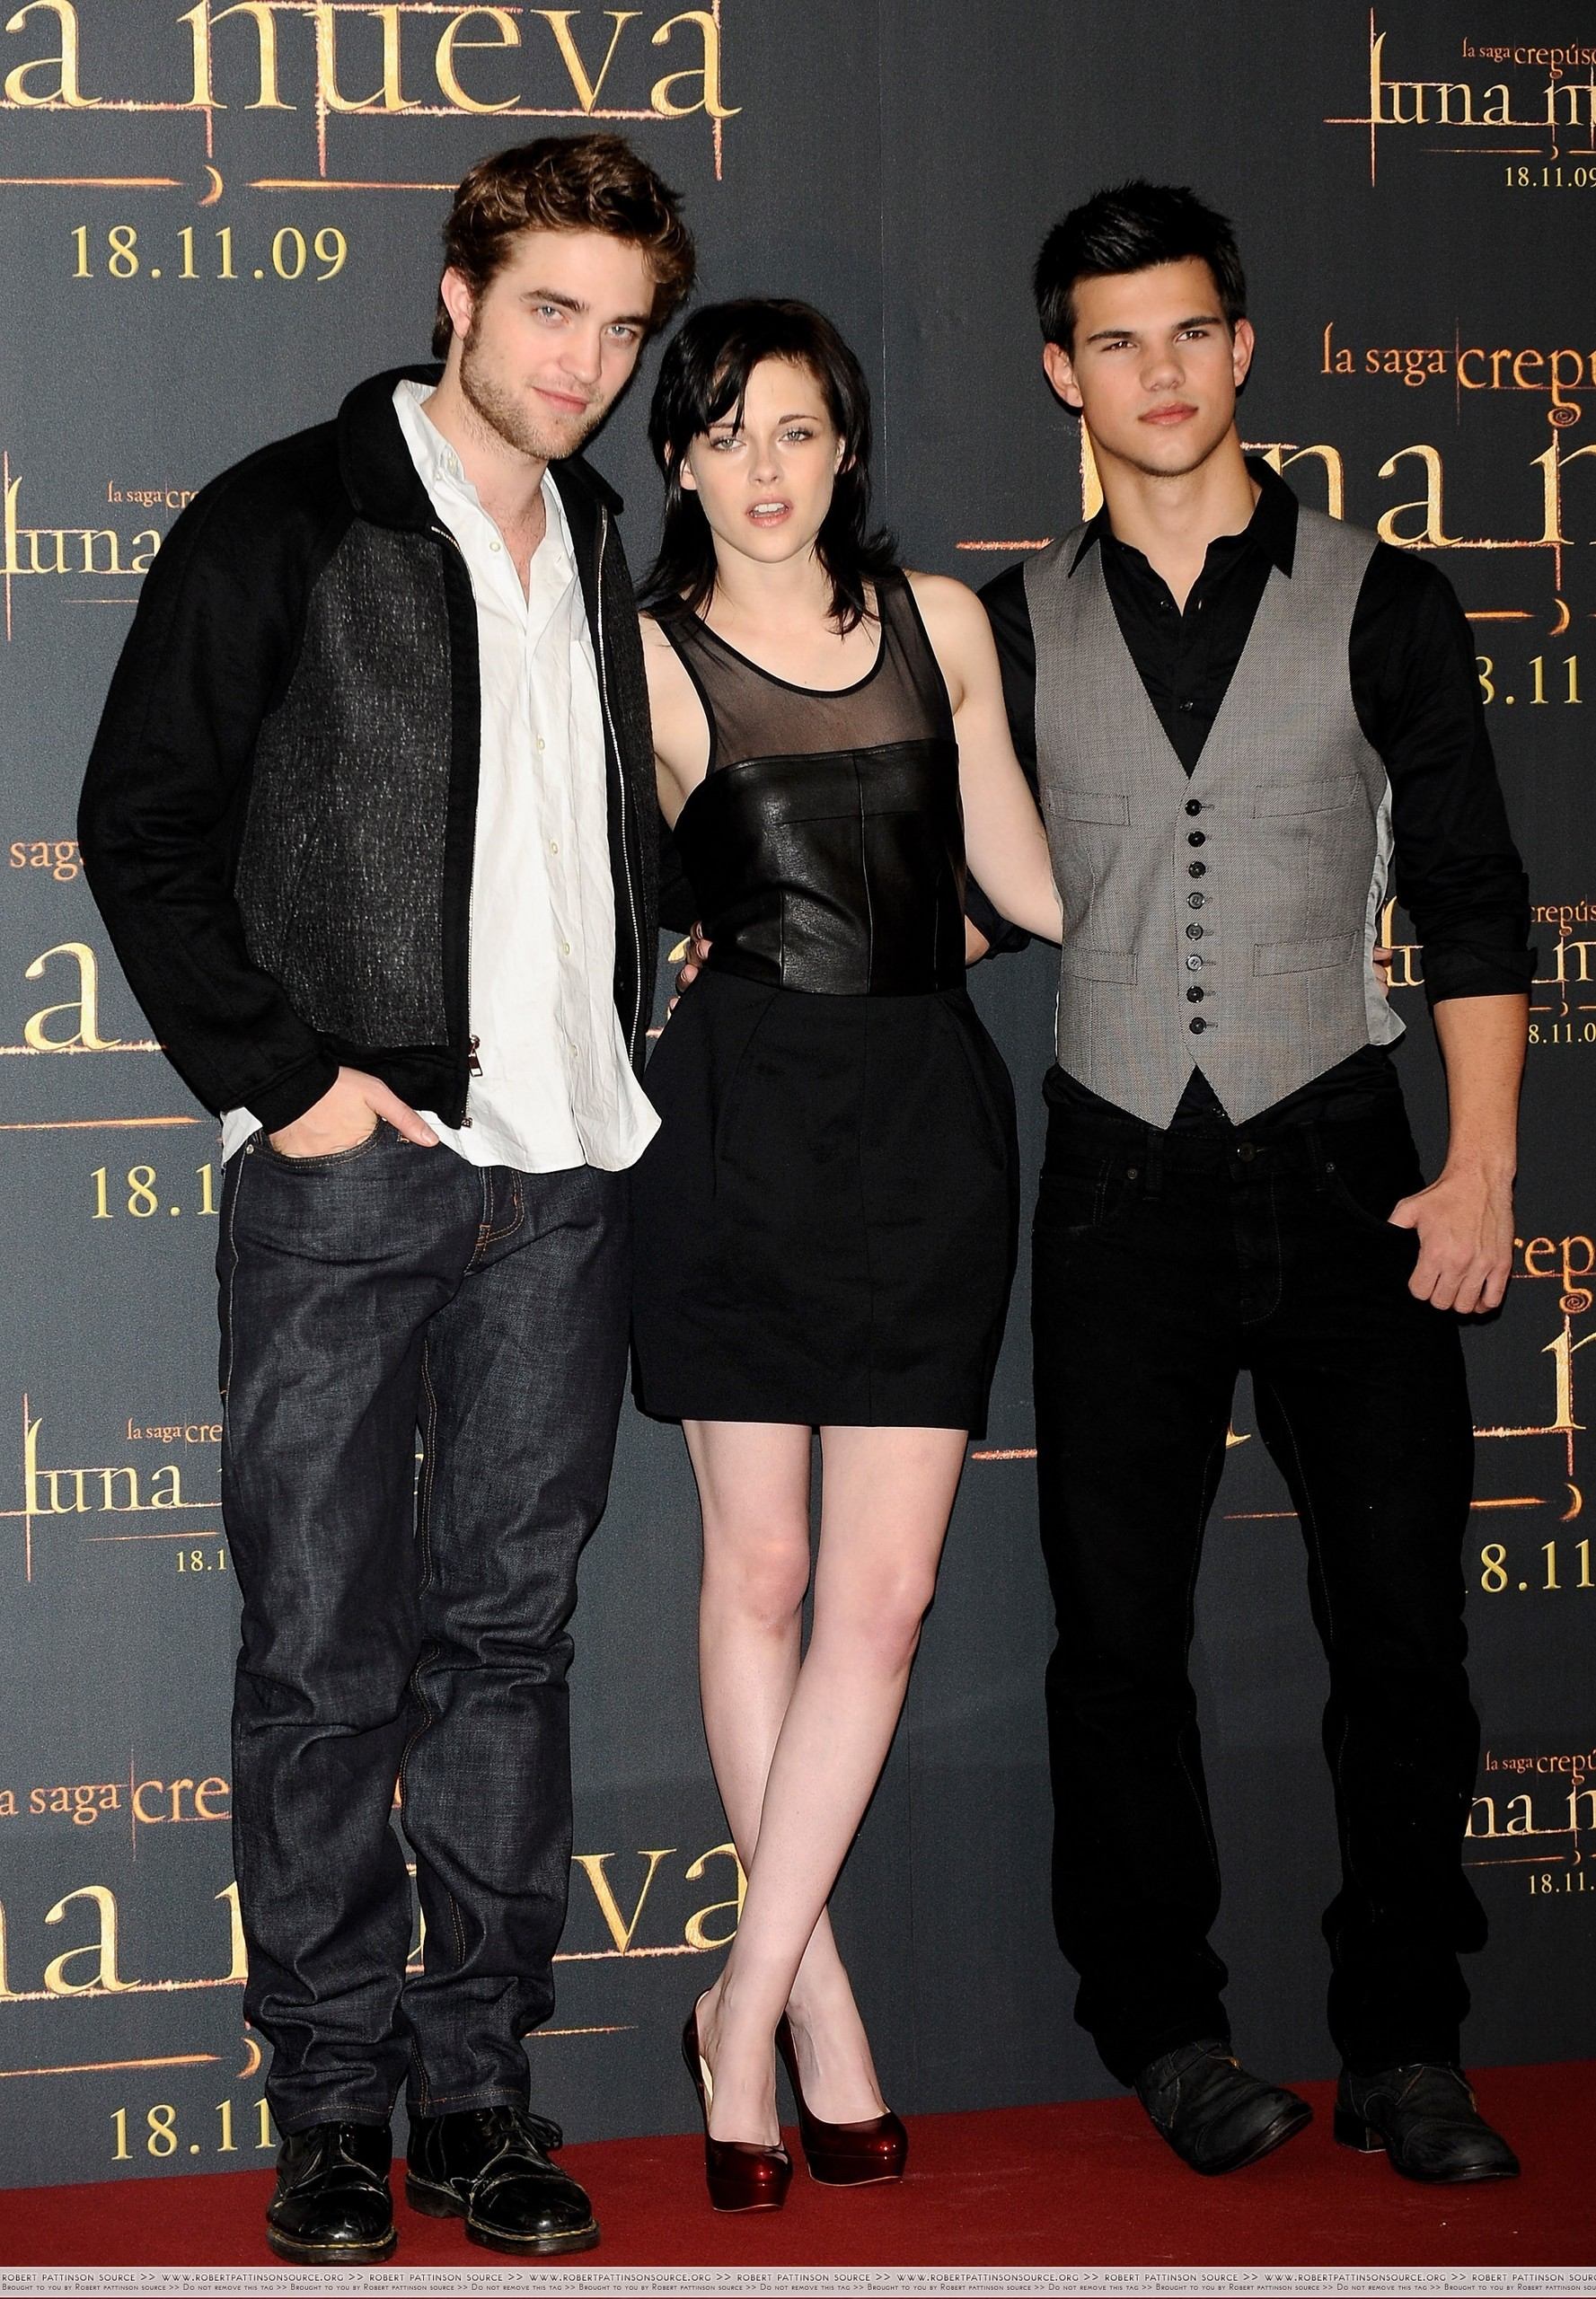 http://images2.fanpop.com/image/photos/9000000/First-pics-from-the-Madrid-Press-Conference-twilight-series-9023989-1777-2560.jpg